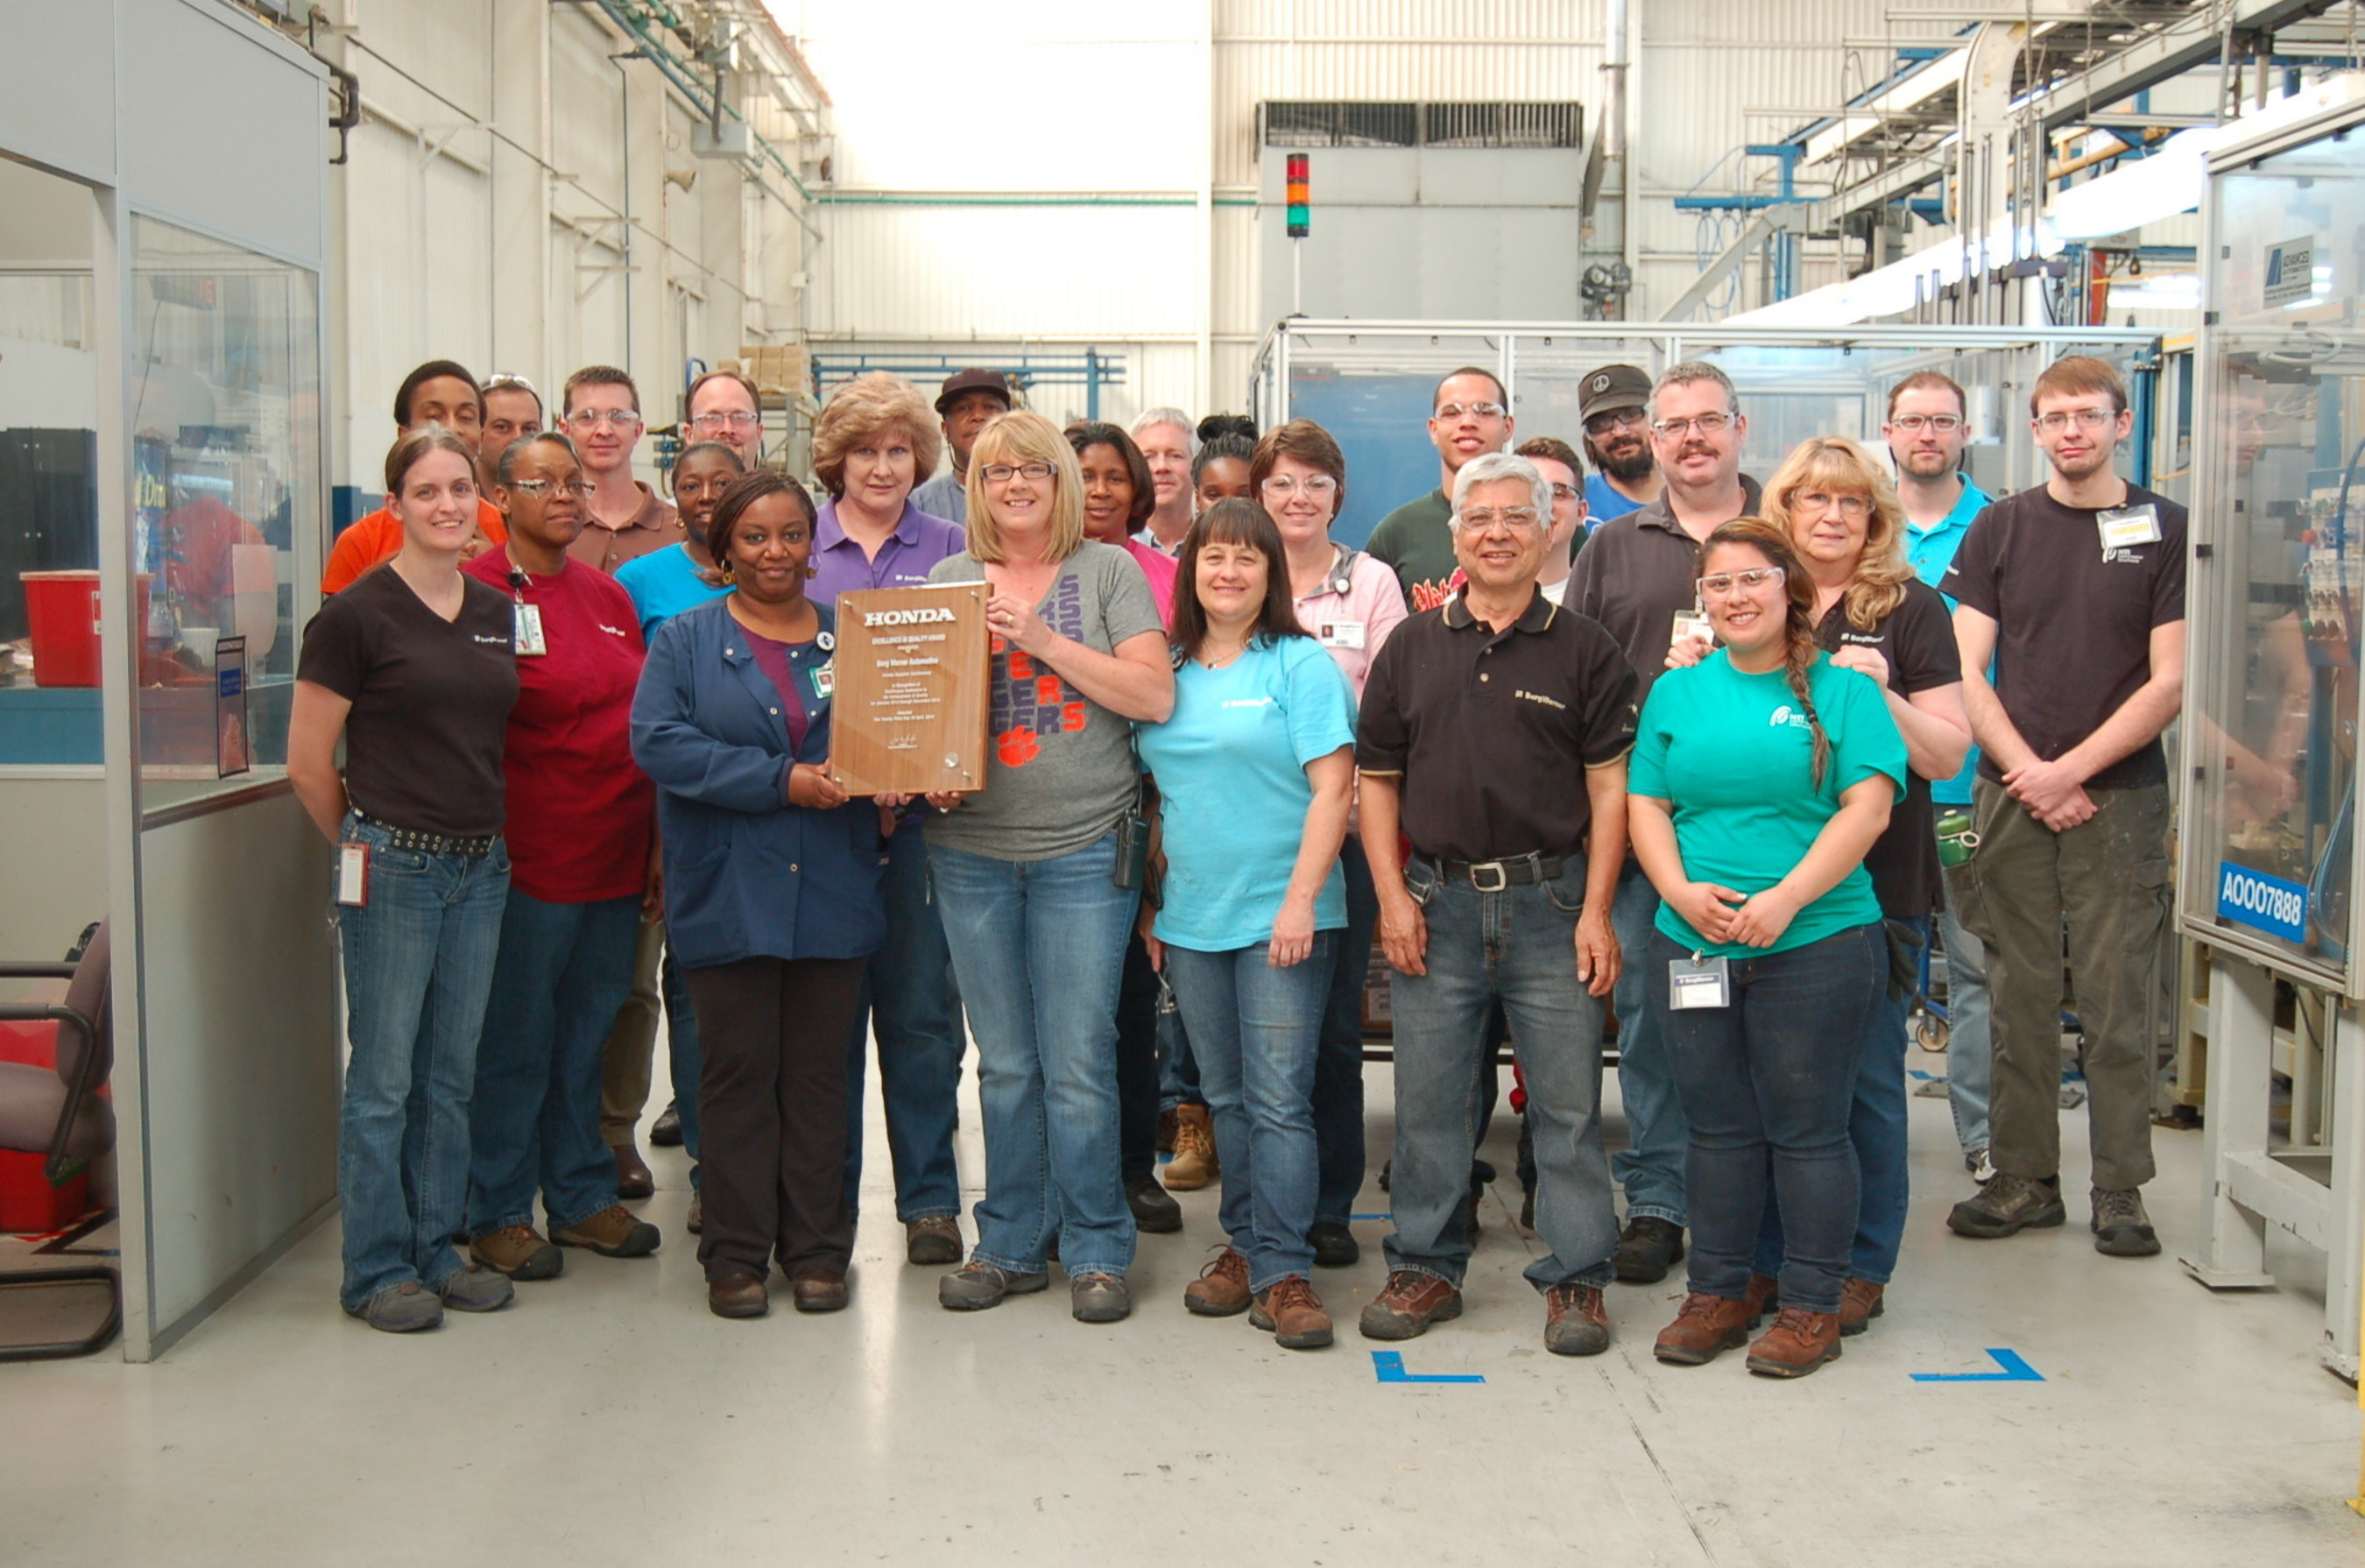 Employees From BorgWarneru0027s Manufacturing Facility In Seneca, South Carolina,  Proudly Display Their Latest Excellence